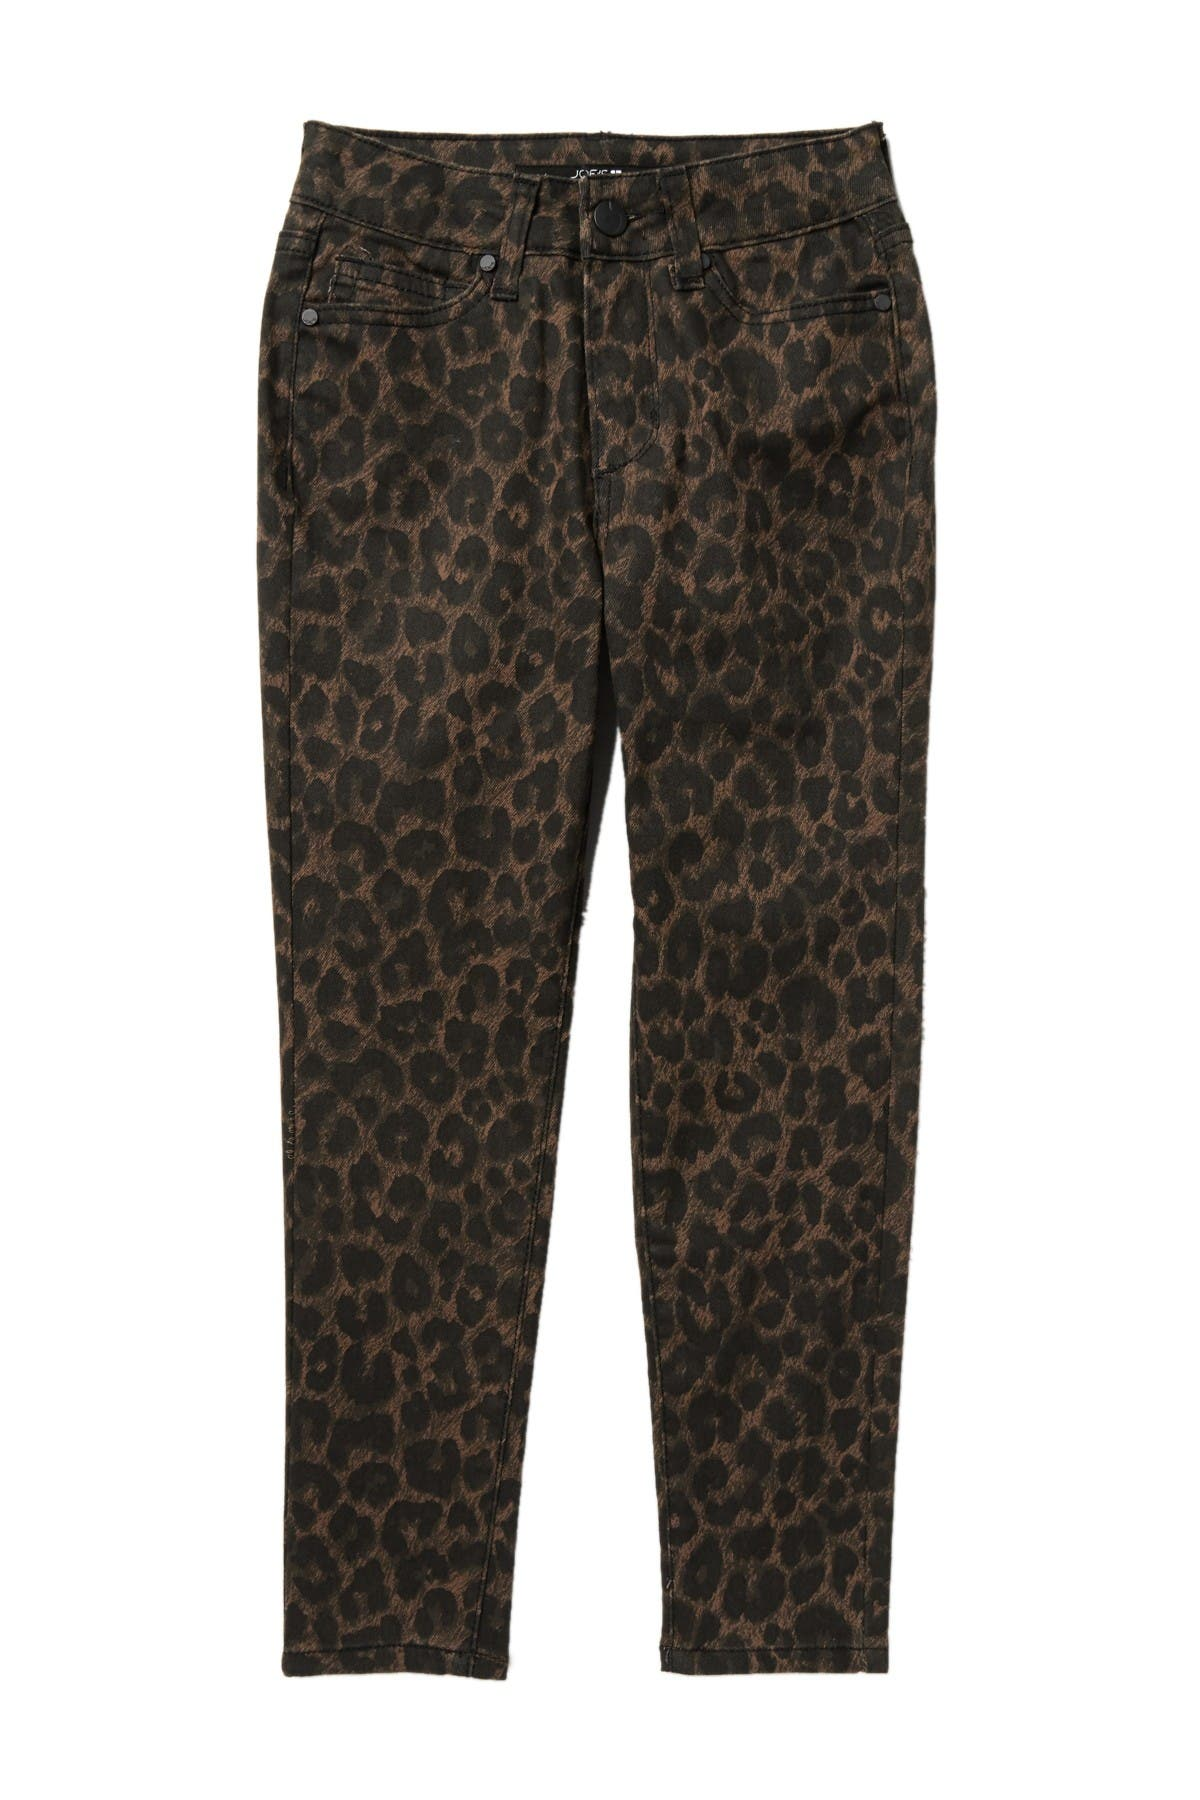 Joes Jeans Womens Charlie High Rise Skinny Ankle Leopard Jean